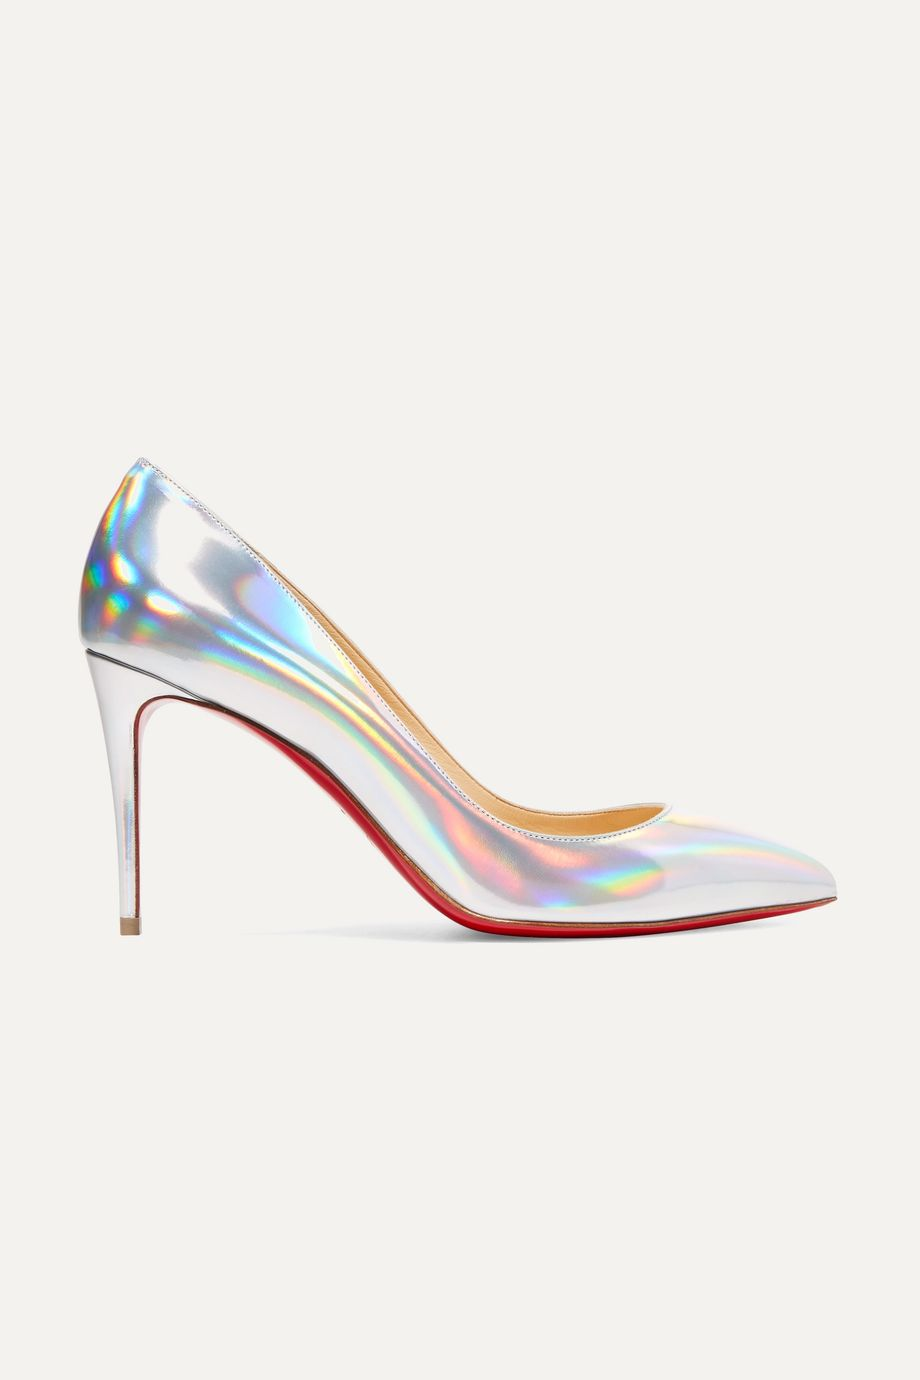 Christian Louboutin Pigalle Follies 85 iridescent leather pumps